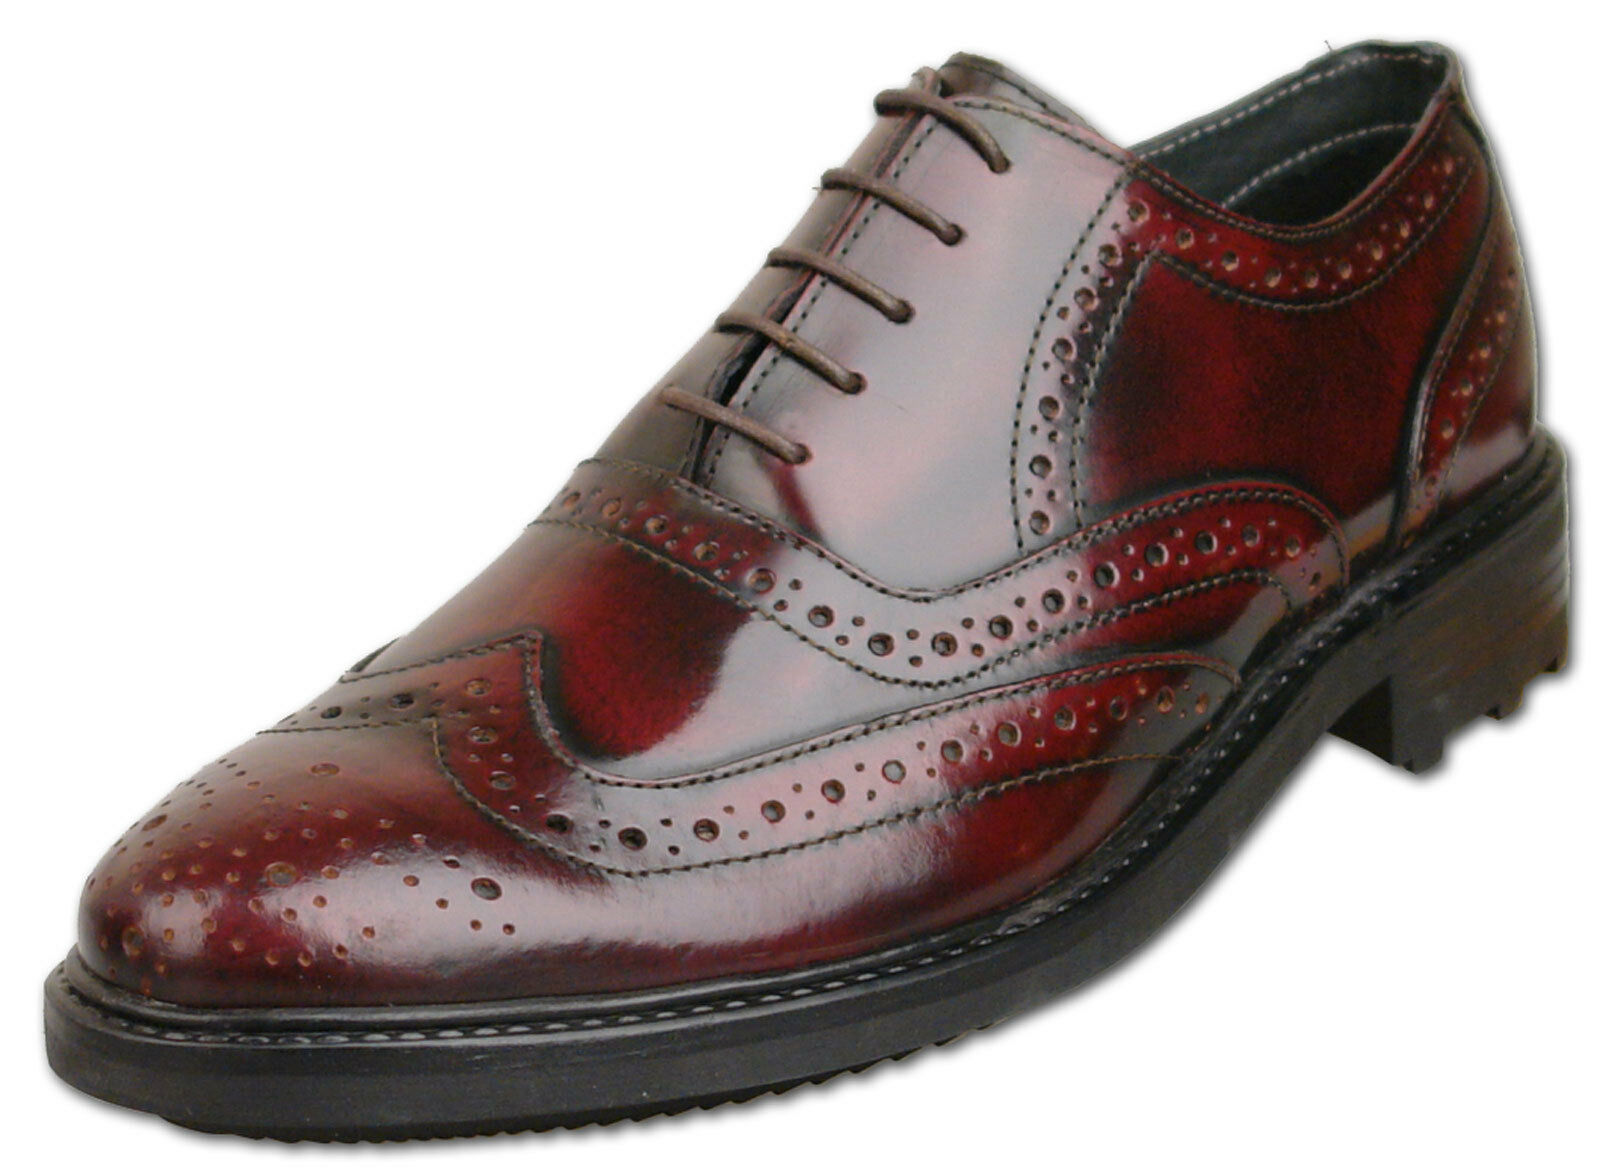 Hombre New Oxblood Leather Lace Talla Up Formal Brogue Zapatos Talla Lace 6 7 8 9 10 11 12 8a1e81